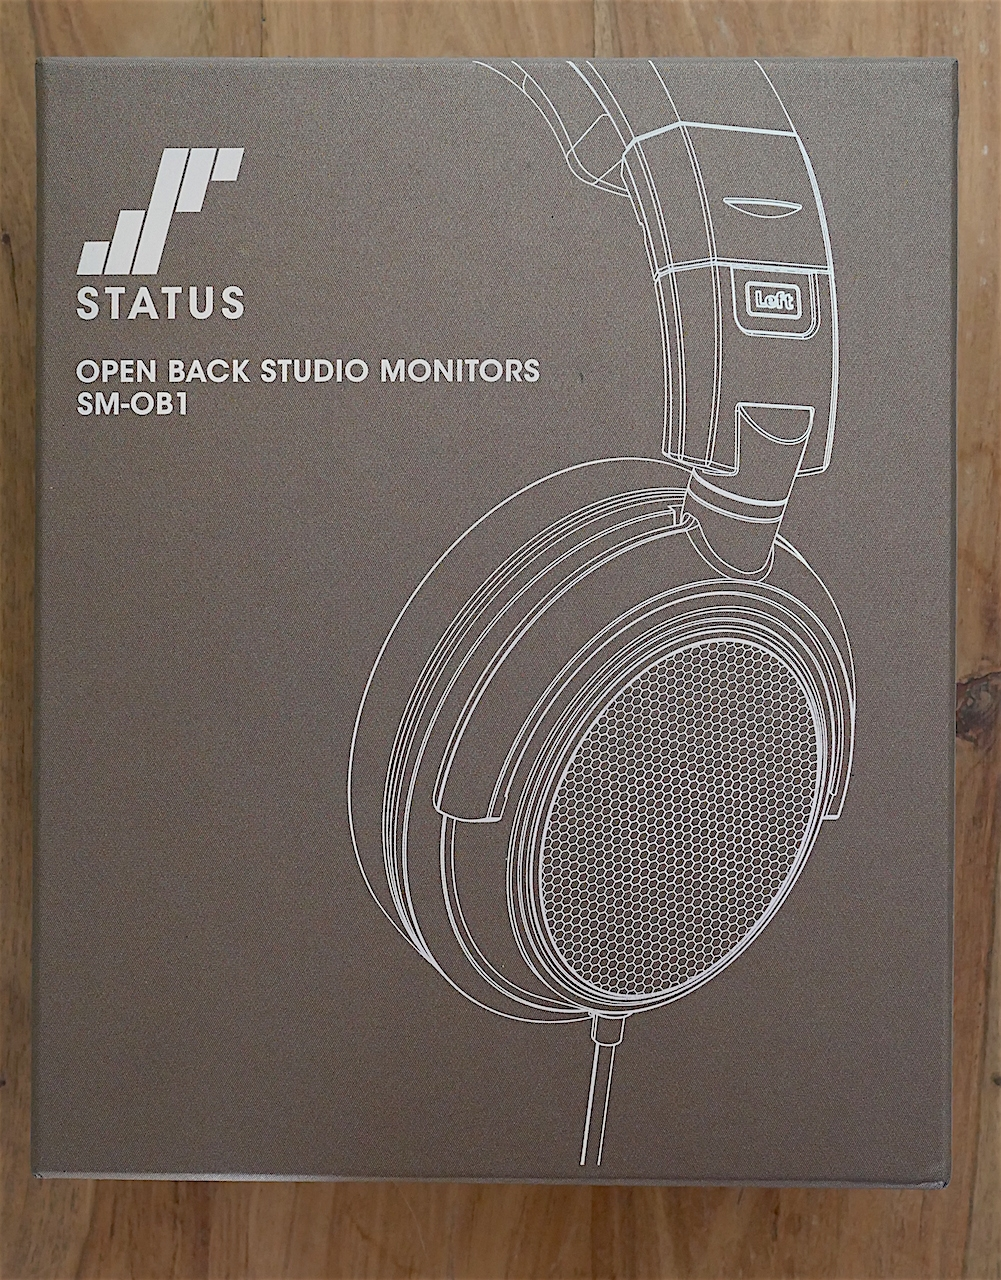 Status Audio OB-1 headphone box.